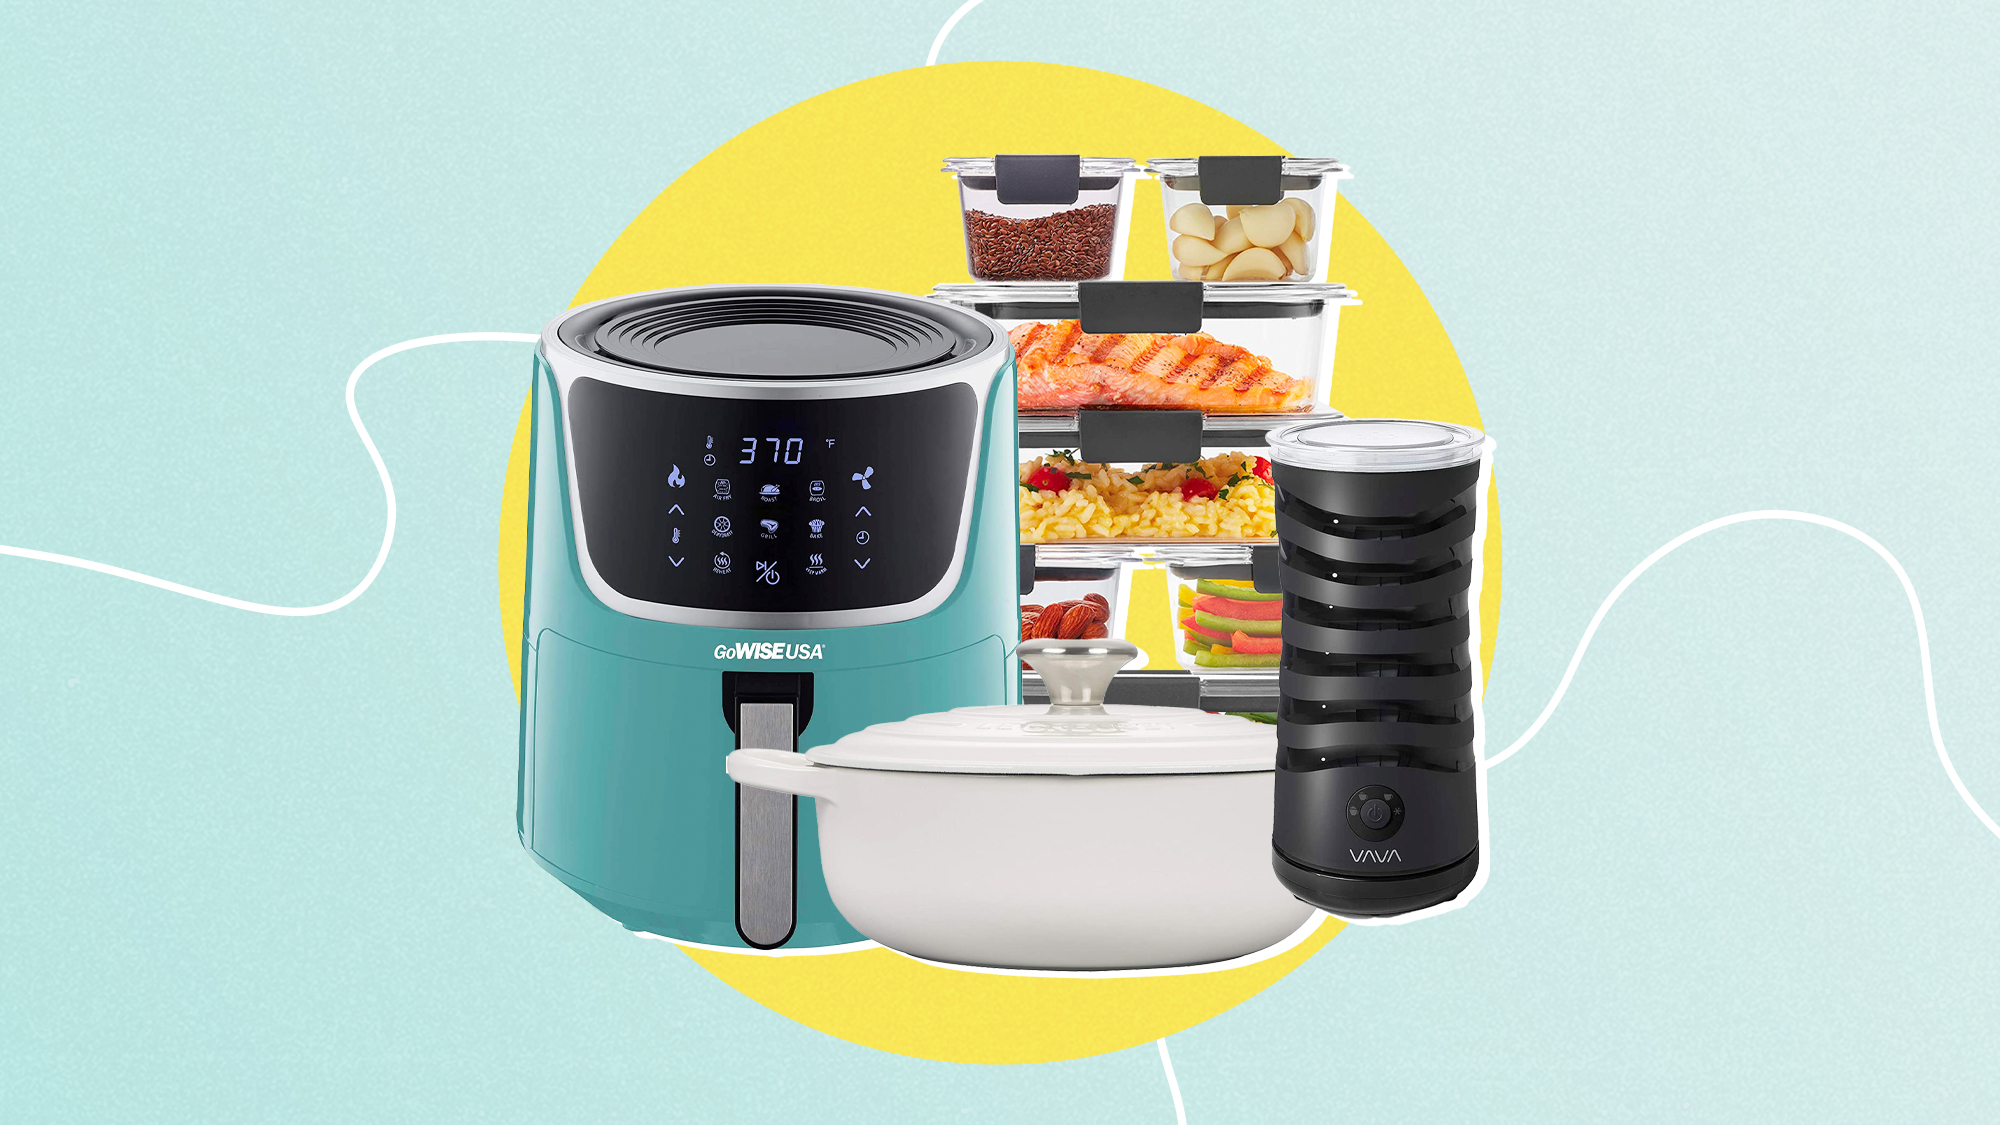 A selection of 4 home items from Amazon on a designed background